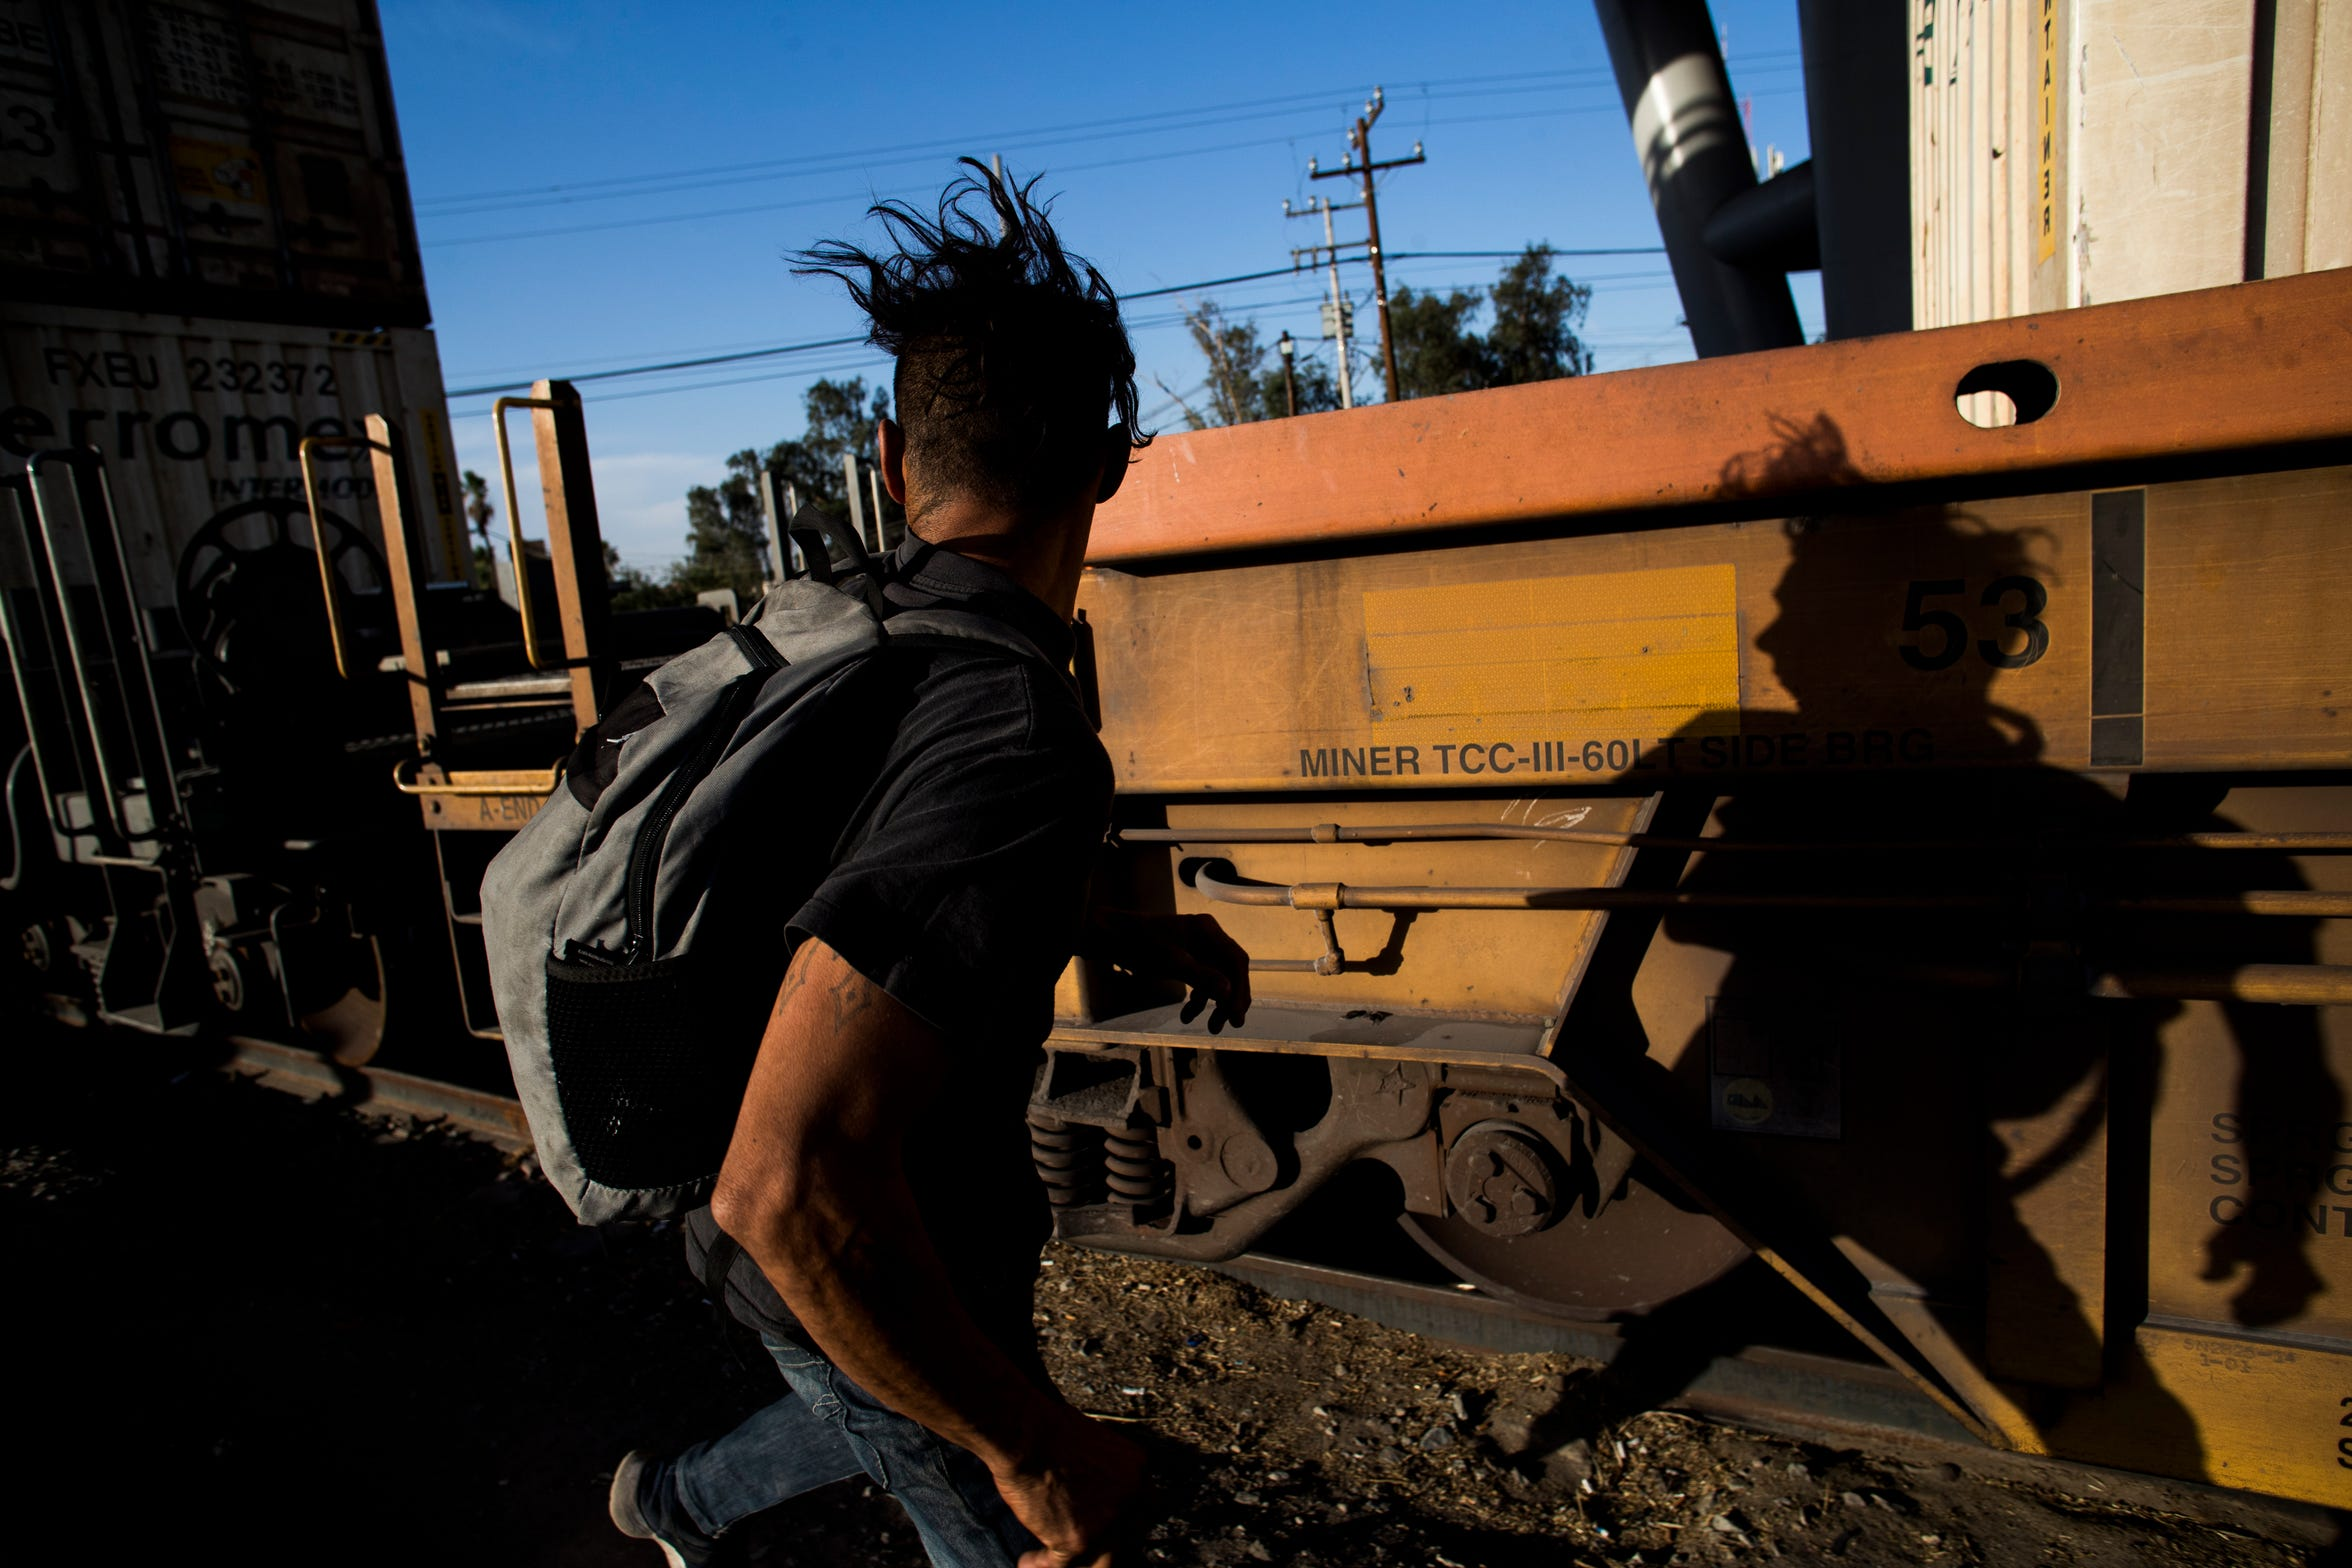 A Central American migrant runs beside a moving train he hopes to jump aboard in order to ride it south.